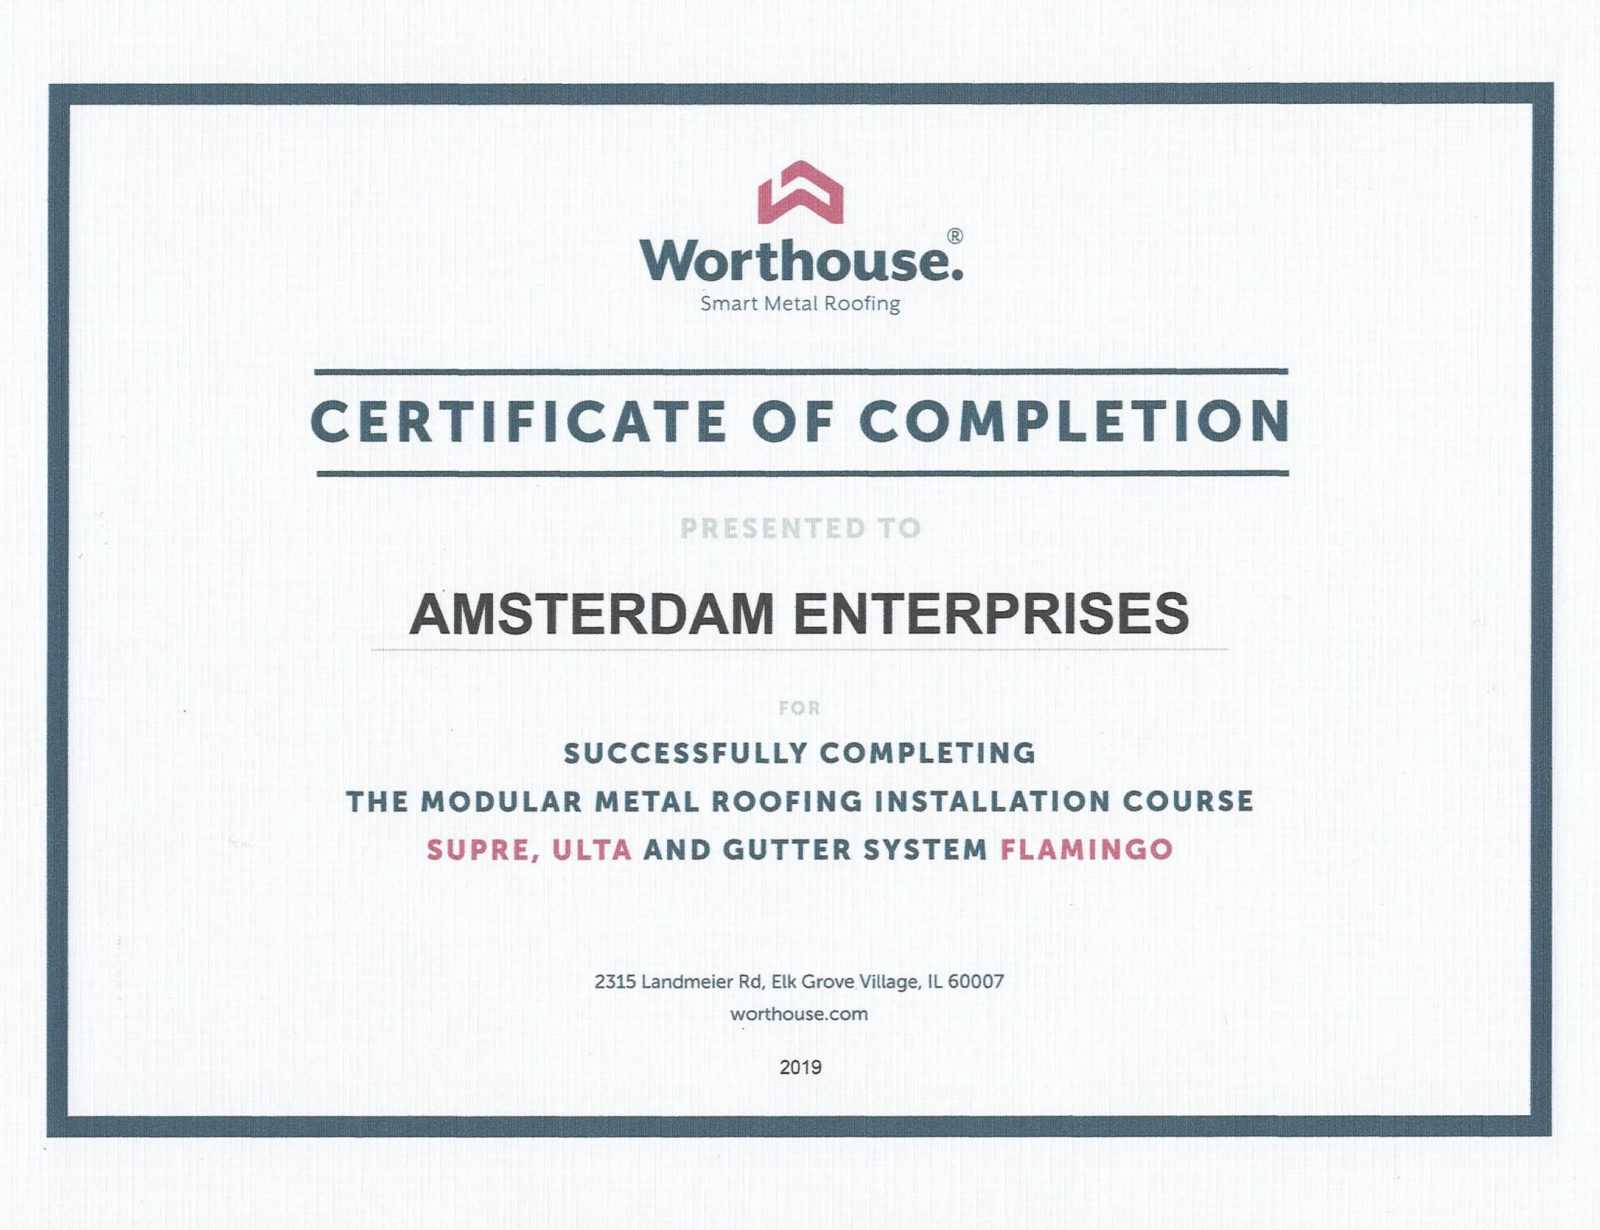 Worthouse-Certificate-of-Completion-Chicago